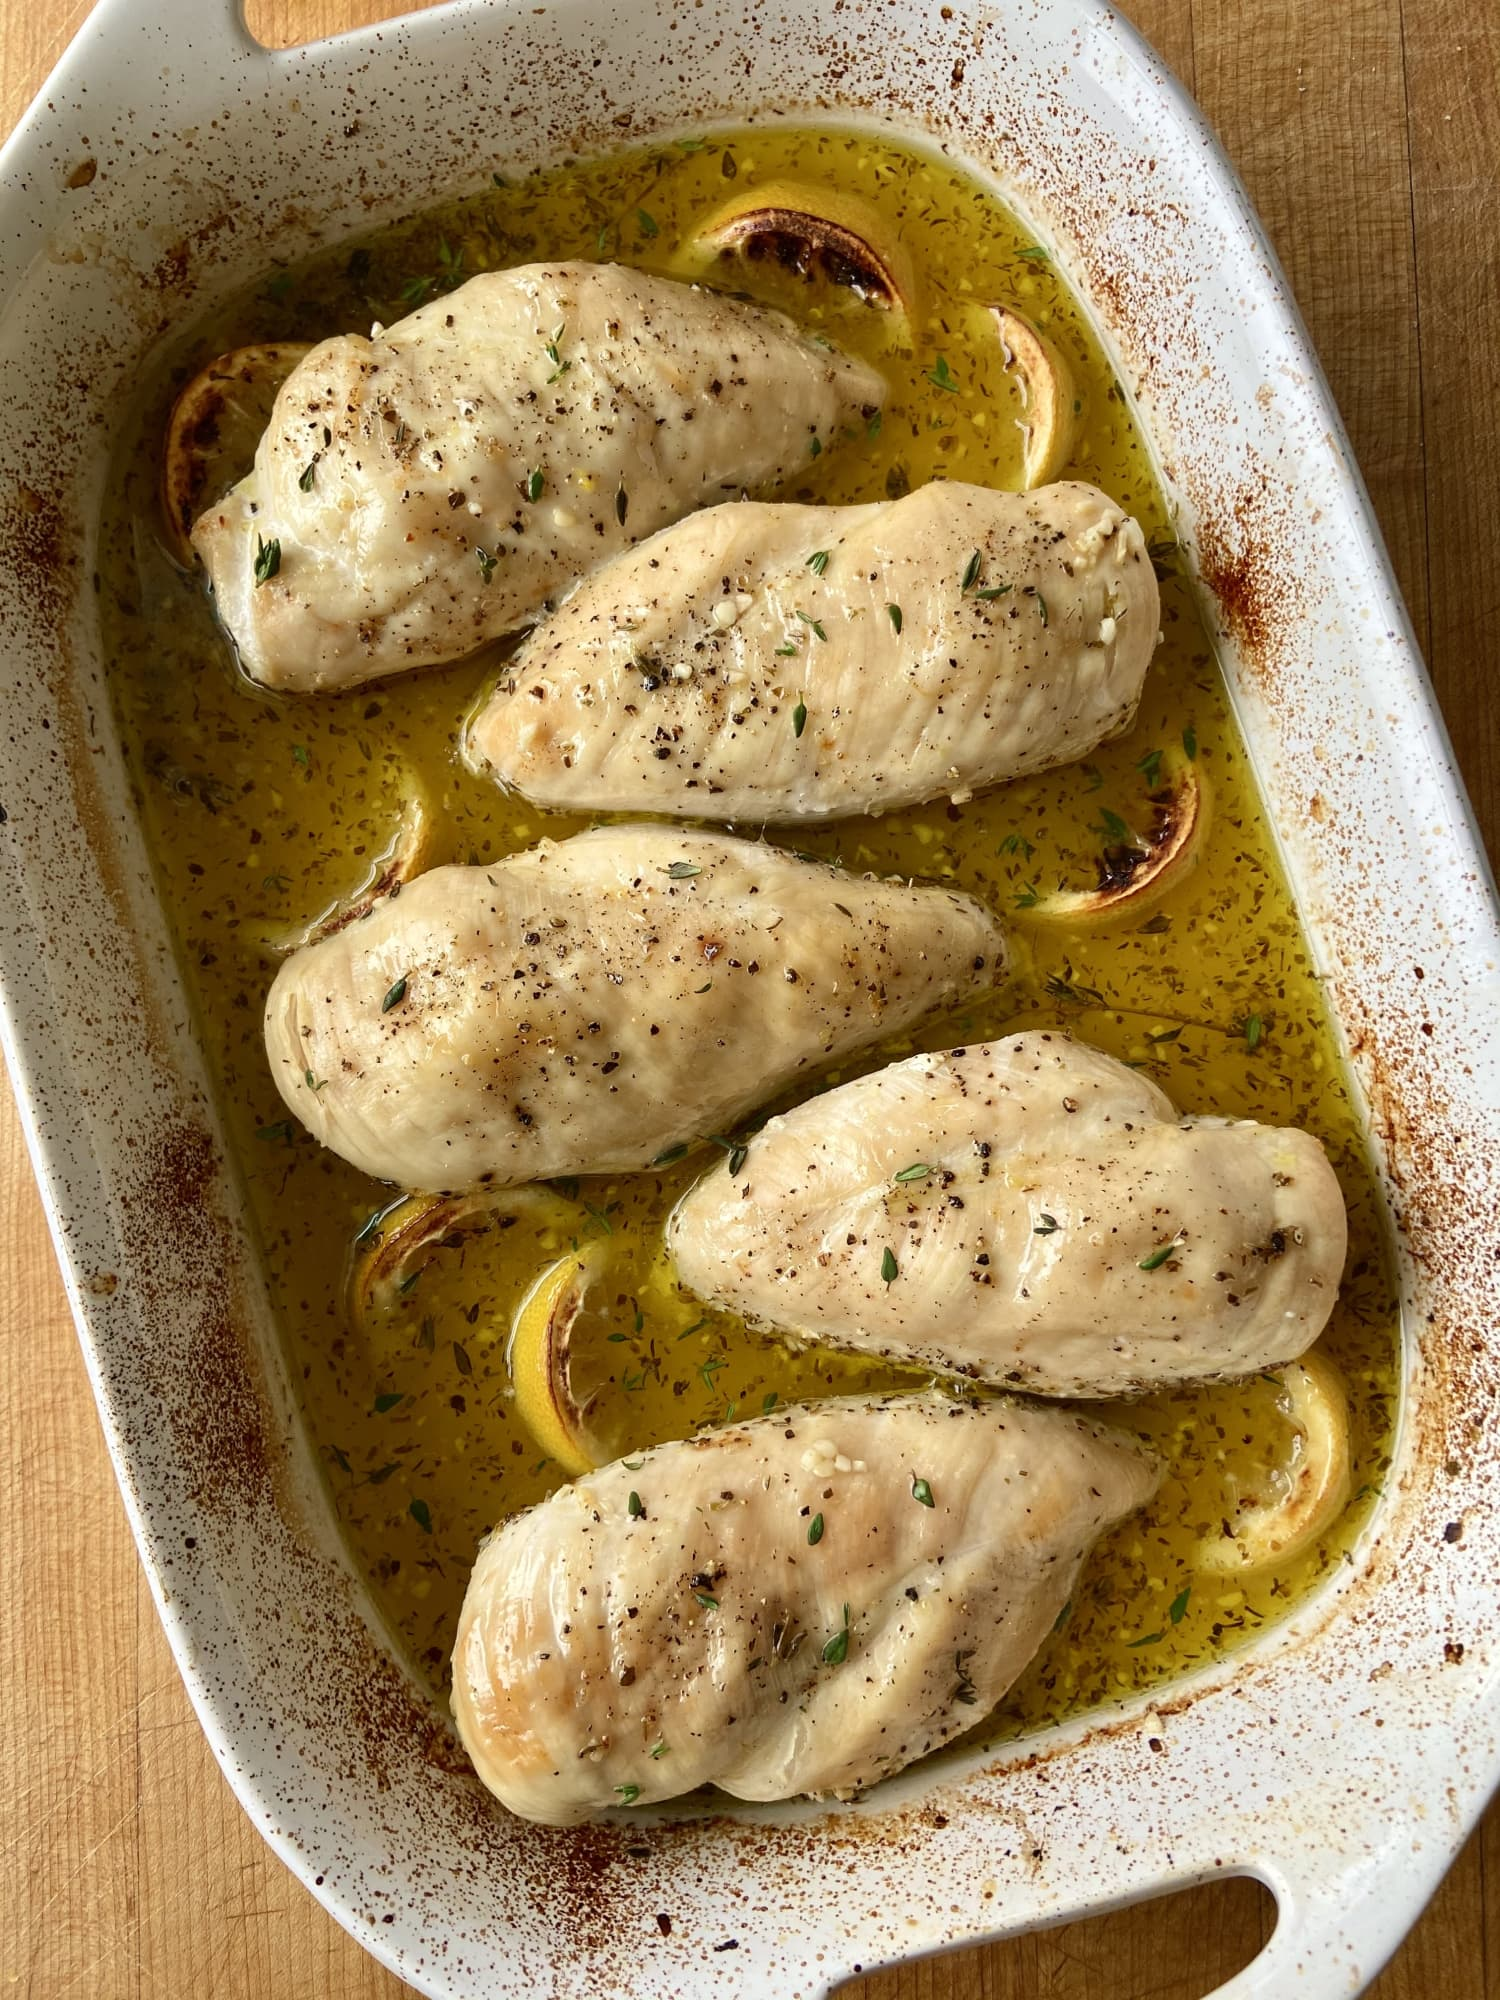 The Ina Garten Chicken Recipe I've Been Obsessed with for Years